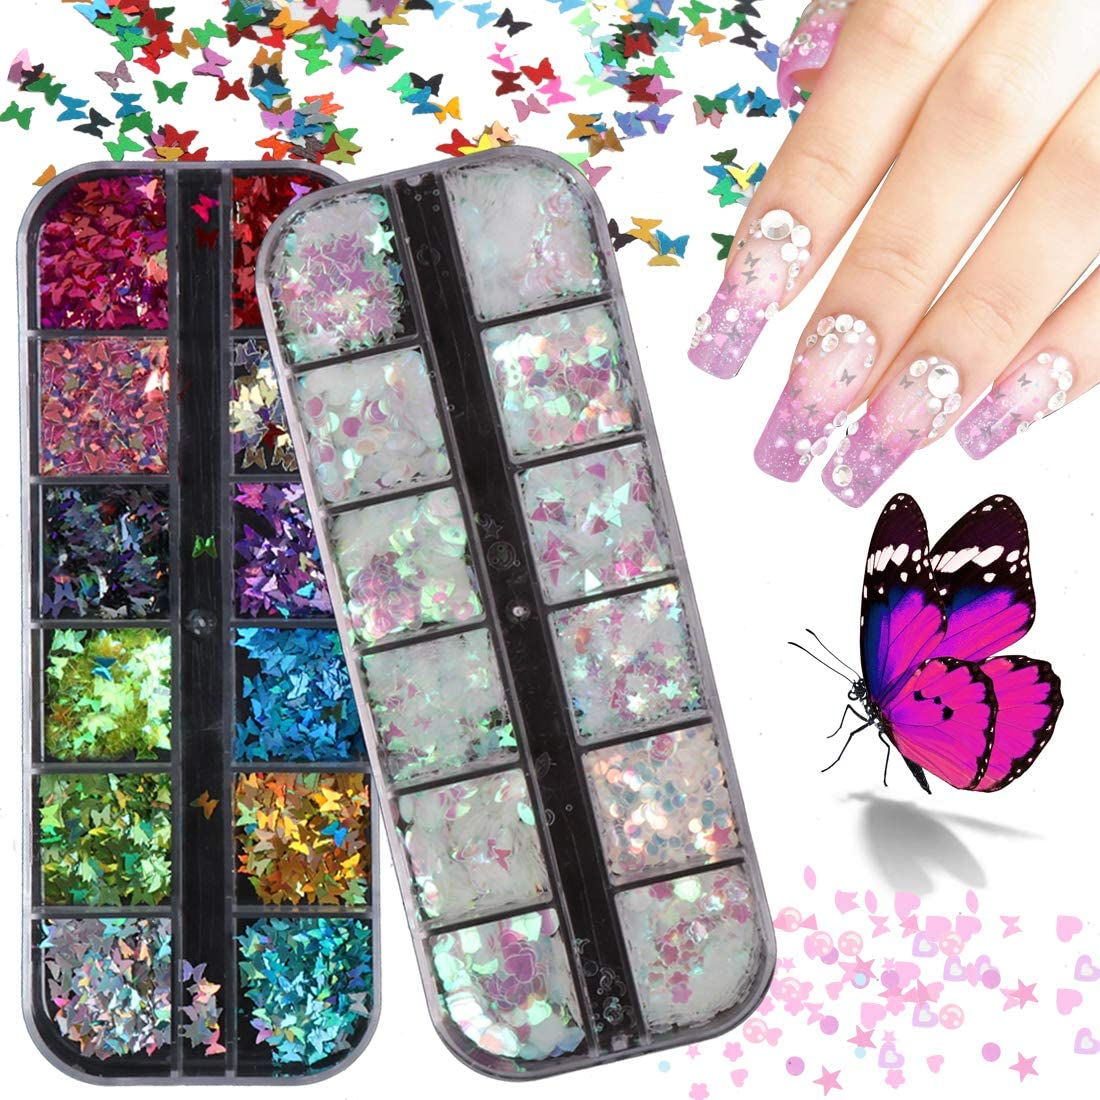 Butterfly Nail Glitter 24 Color Opening large trust release sale Set Holograph Art Decals 3D